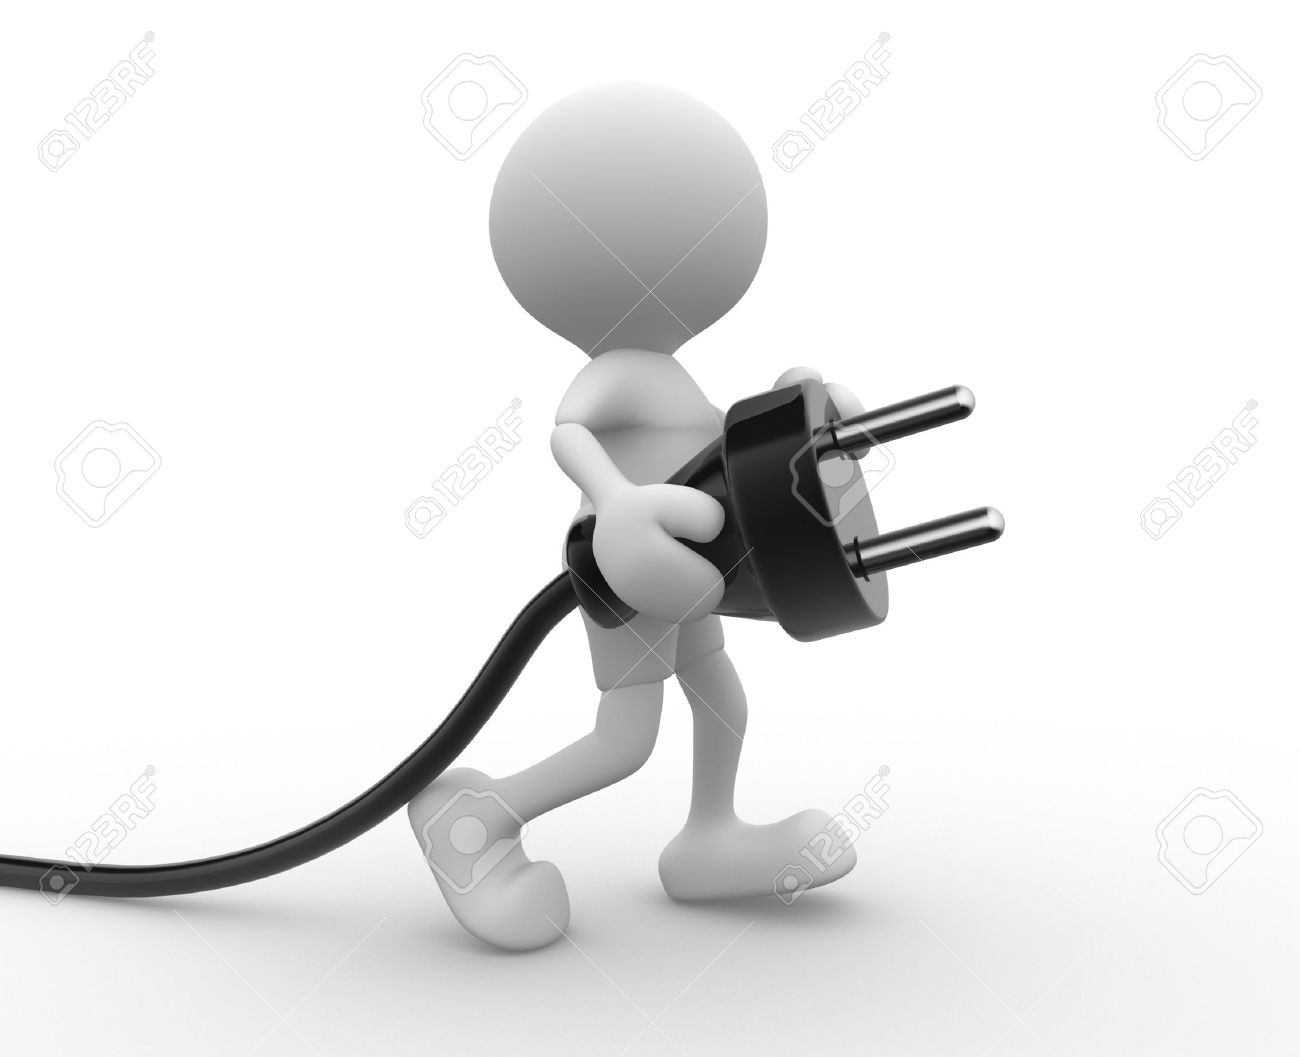 3d people - man, person carrying in his hand an electric plug. Standard-Bild - 17639963